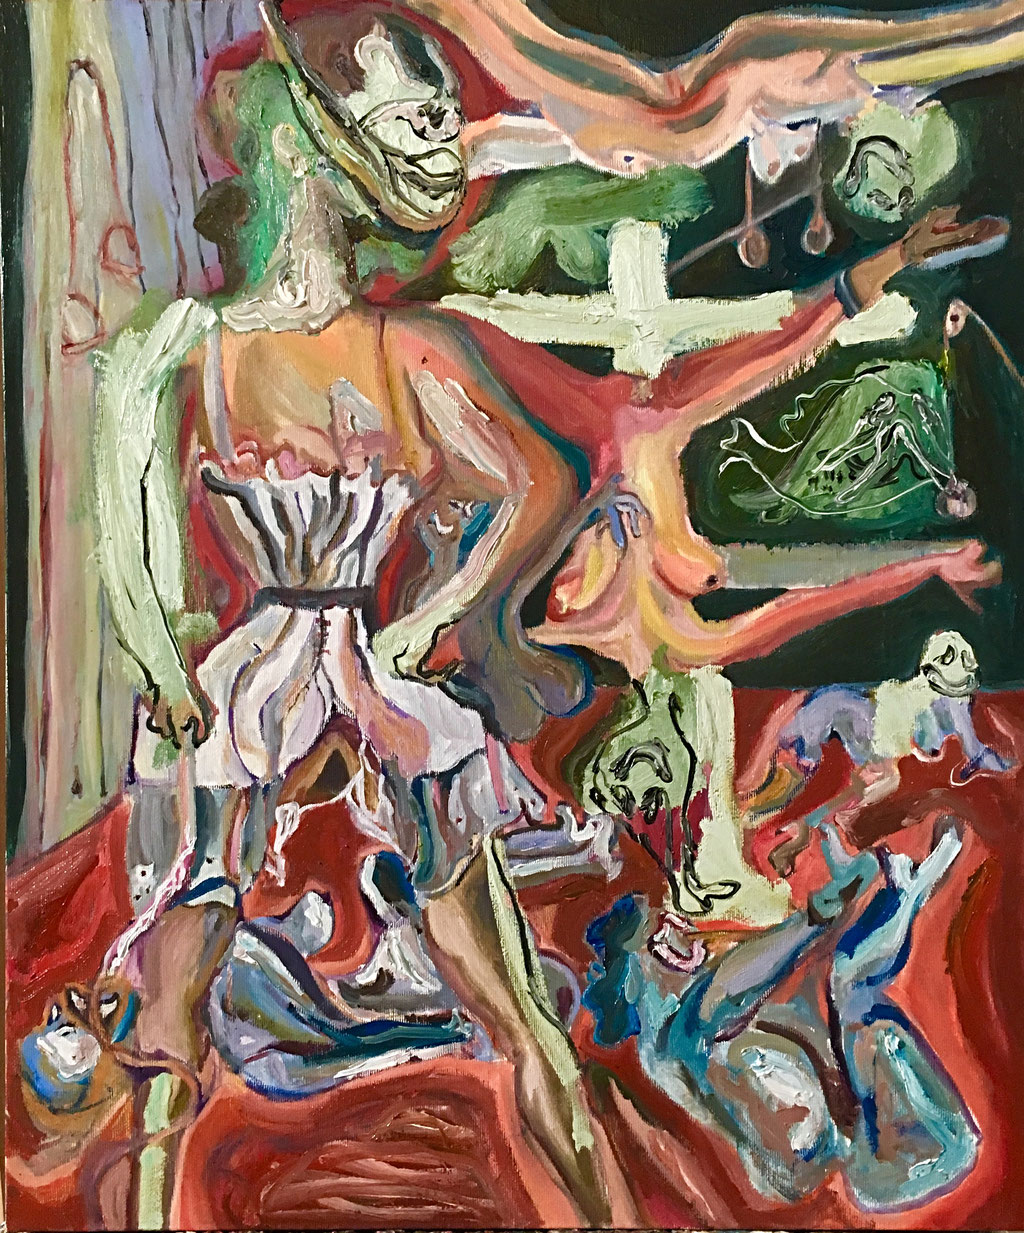 Thermocline Otto Dix, oil on canvas 50x60, 2017